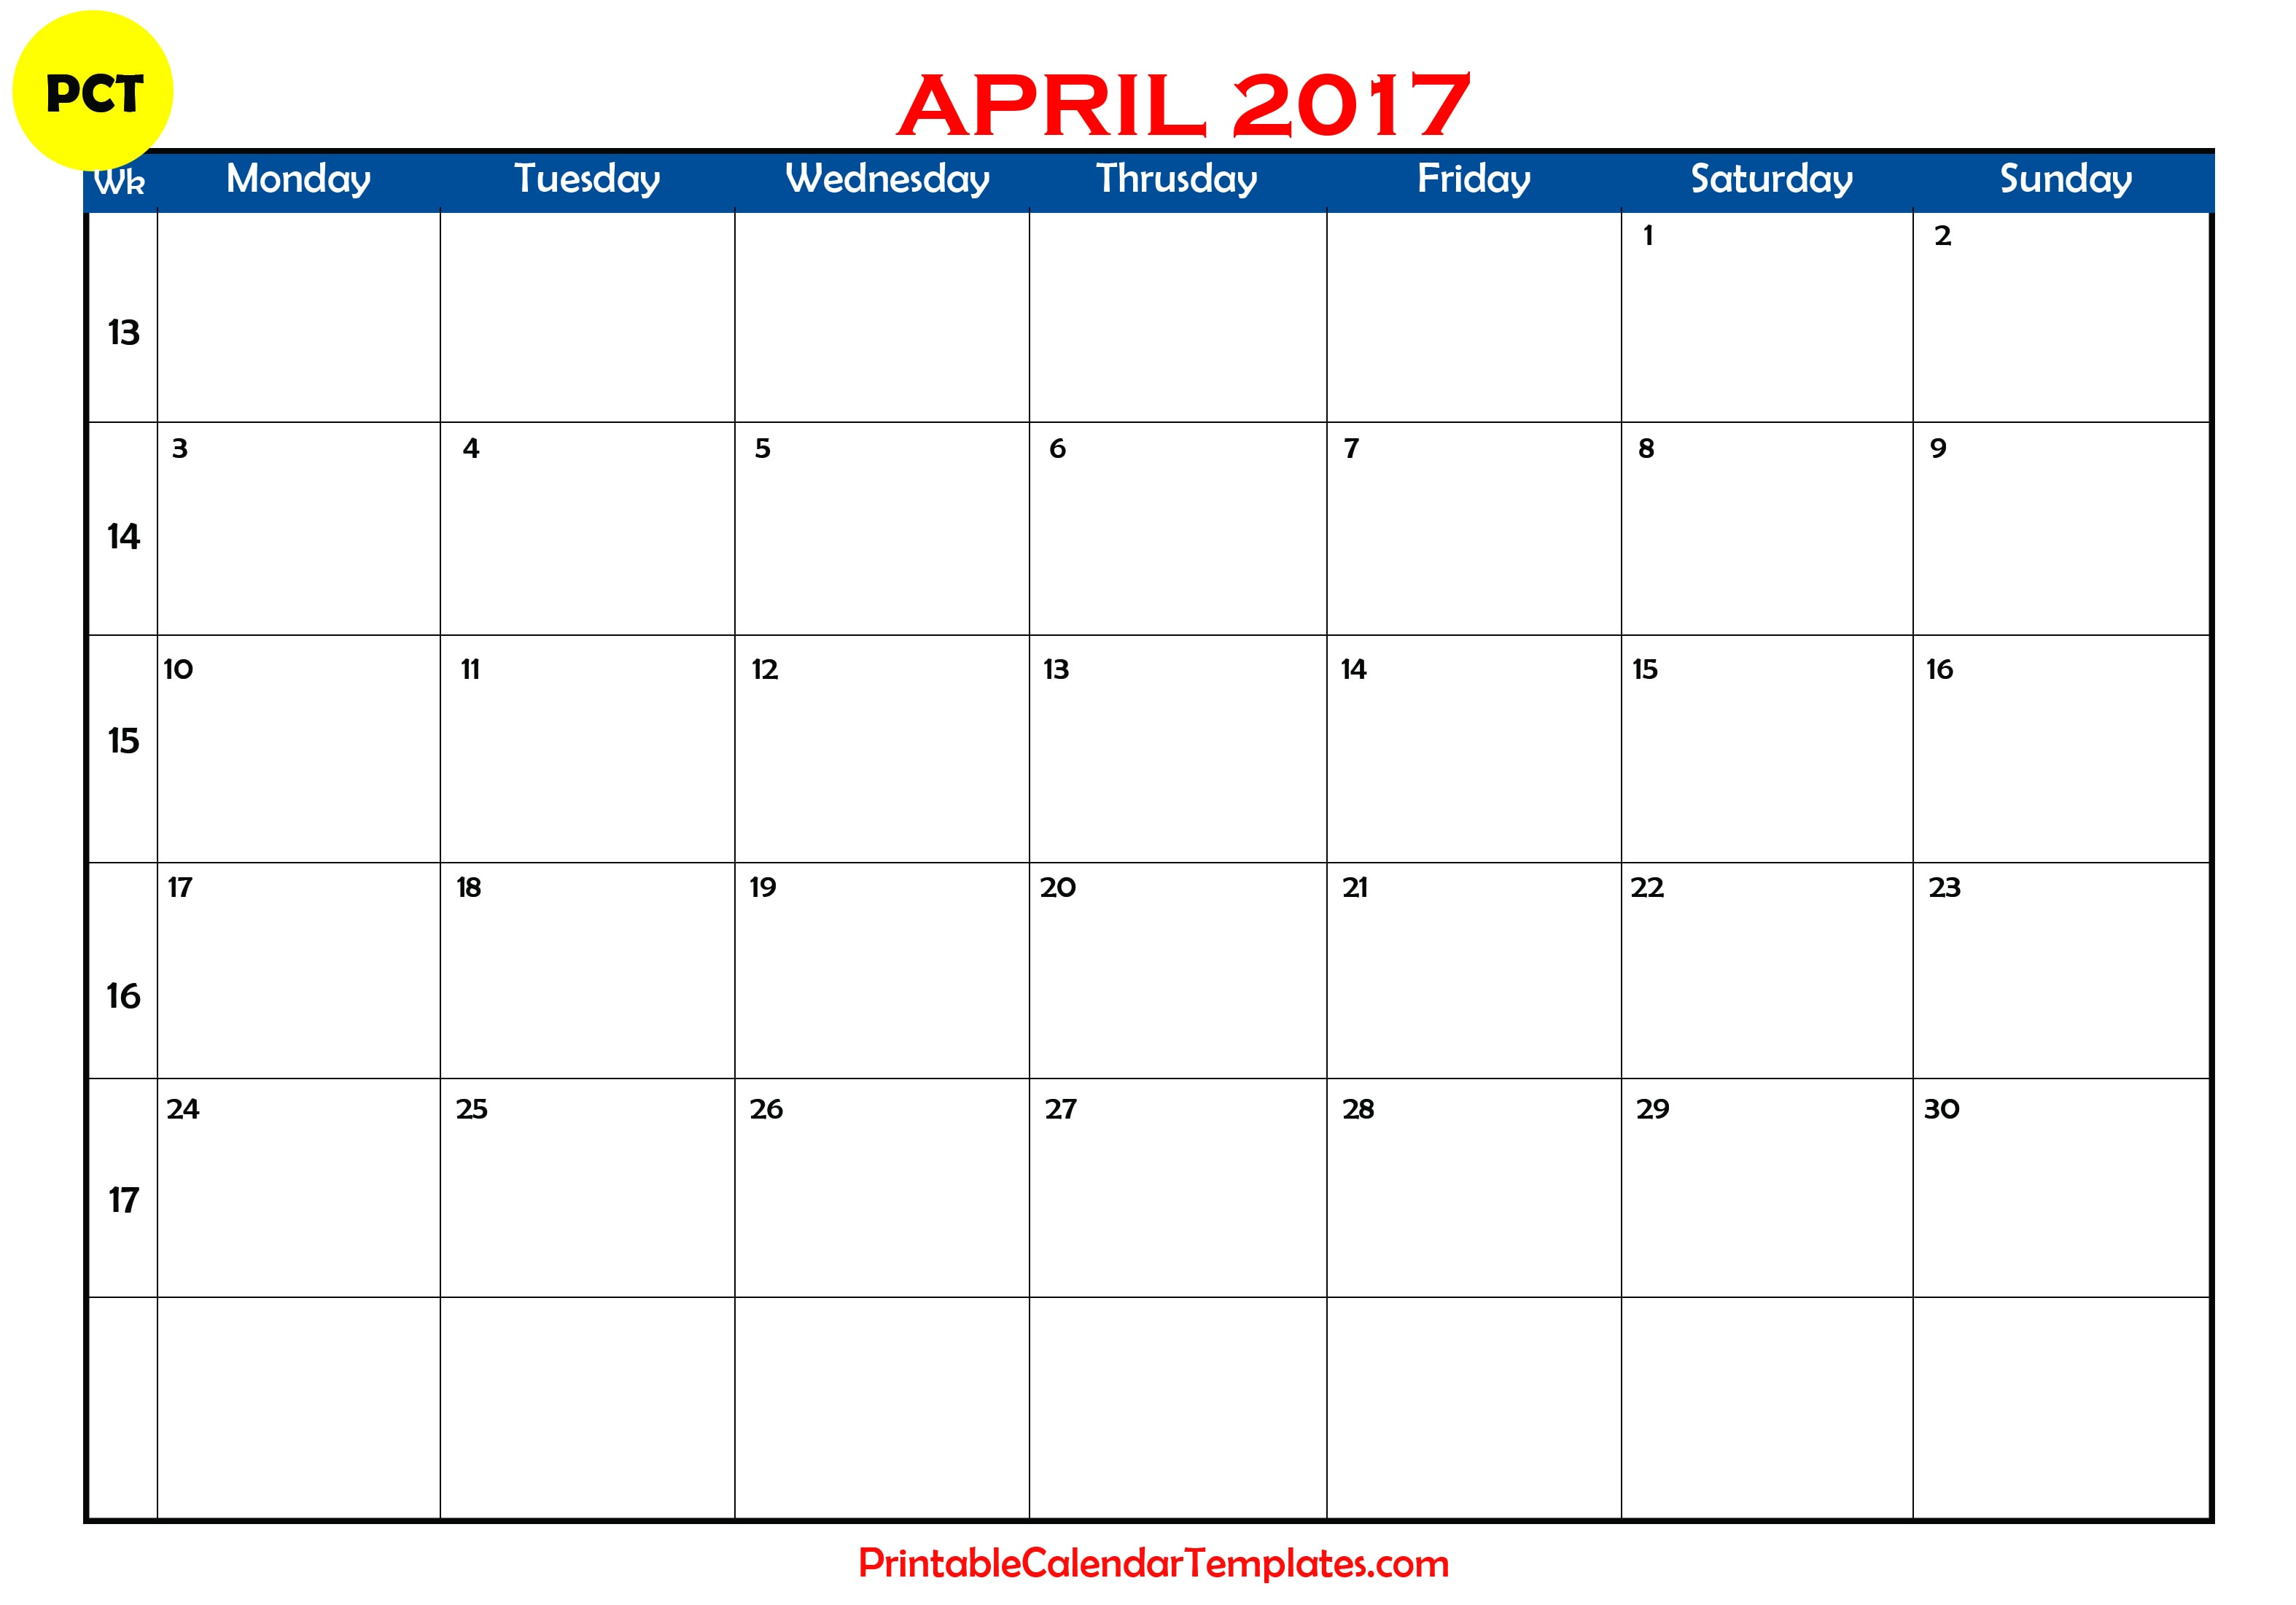 Blank Calendar Template April : Free printable calendar templates